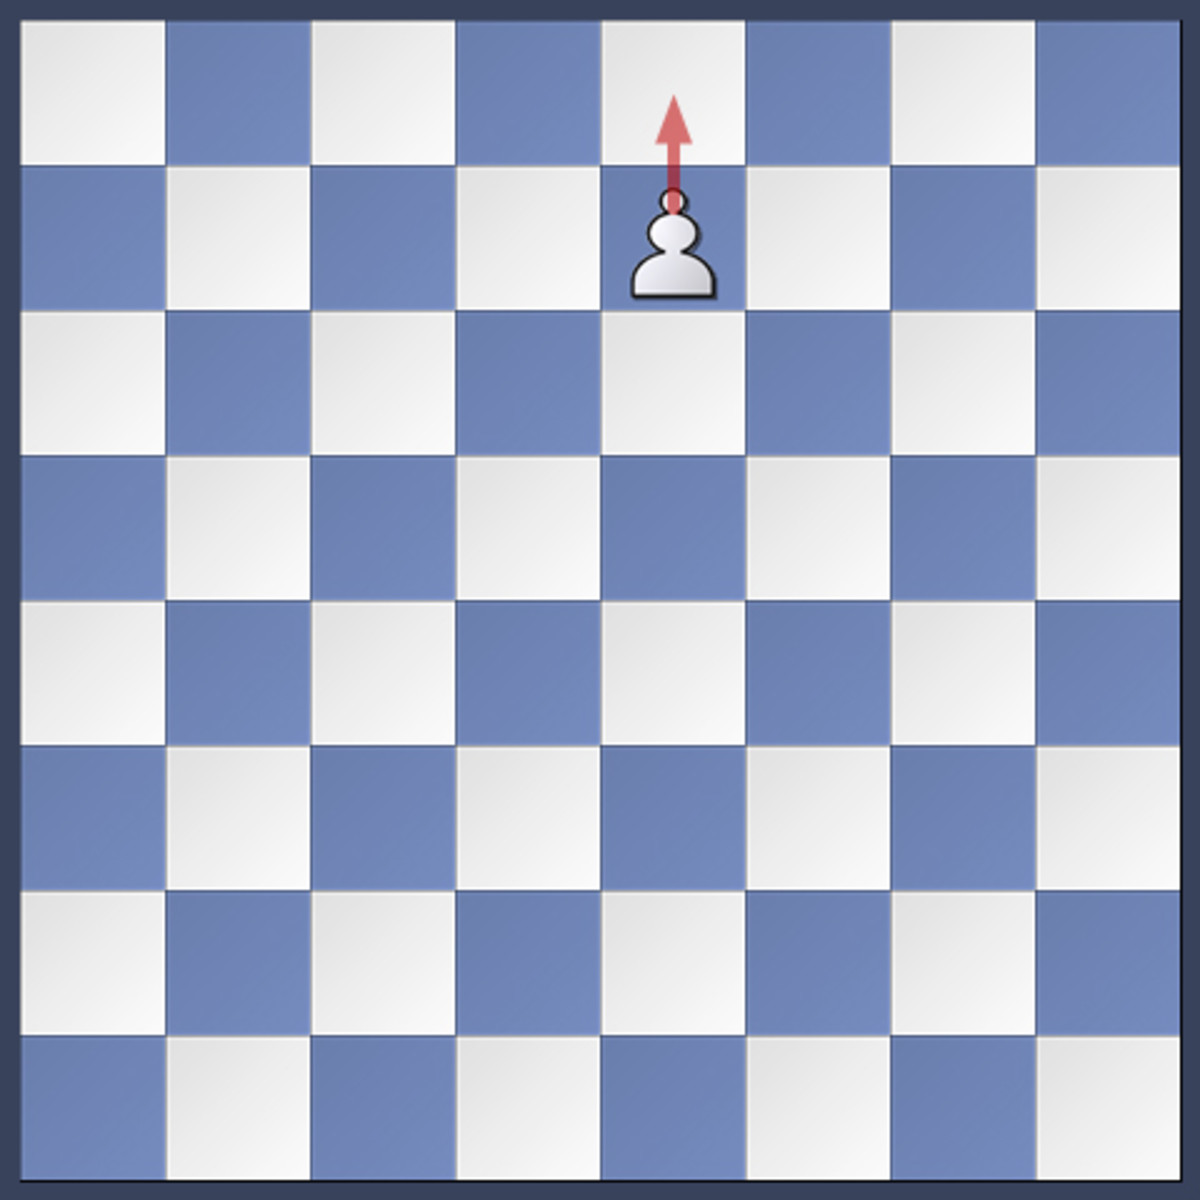 The white pawn is one square away from promotion.